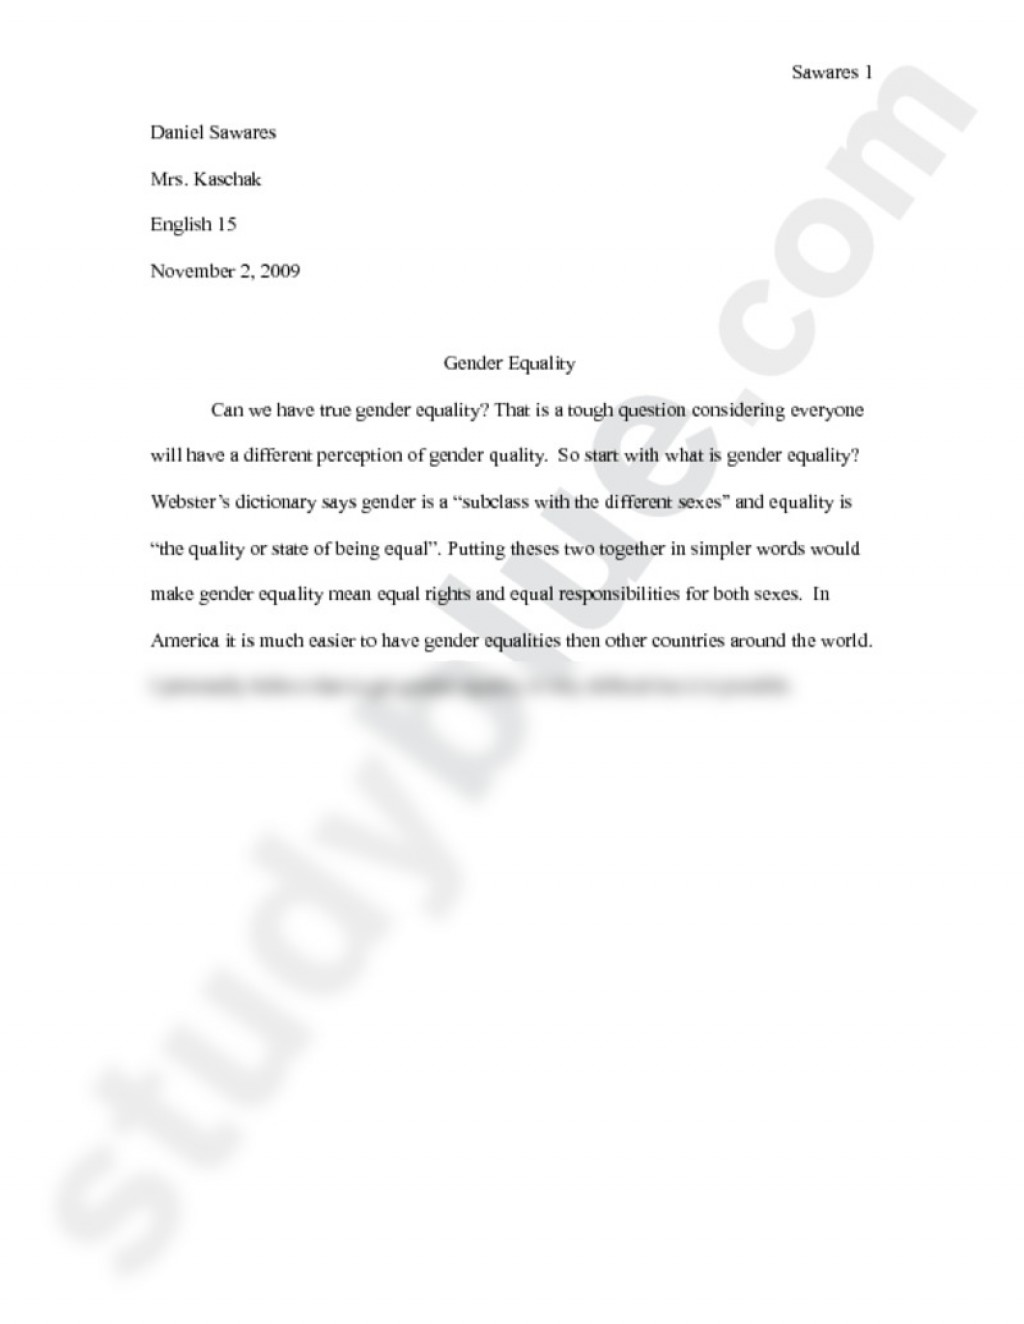 020 Preview0 Essay Example Gender Top Equality Research Paper Ideas Argumentative Pdf In Simple Words Large